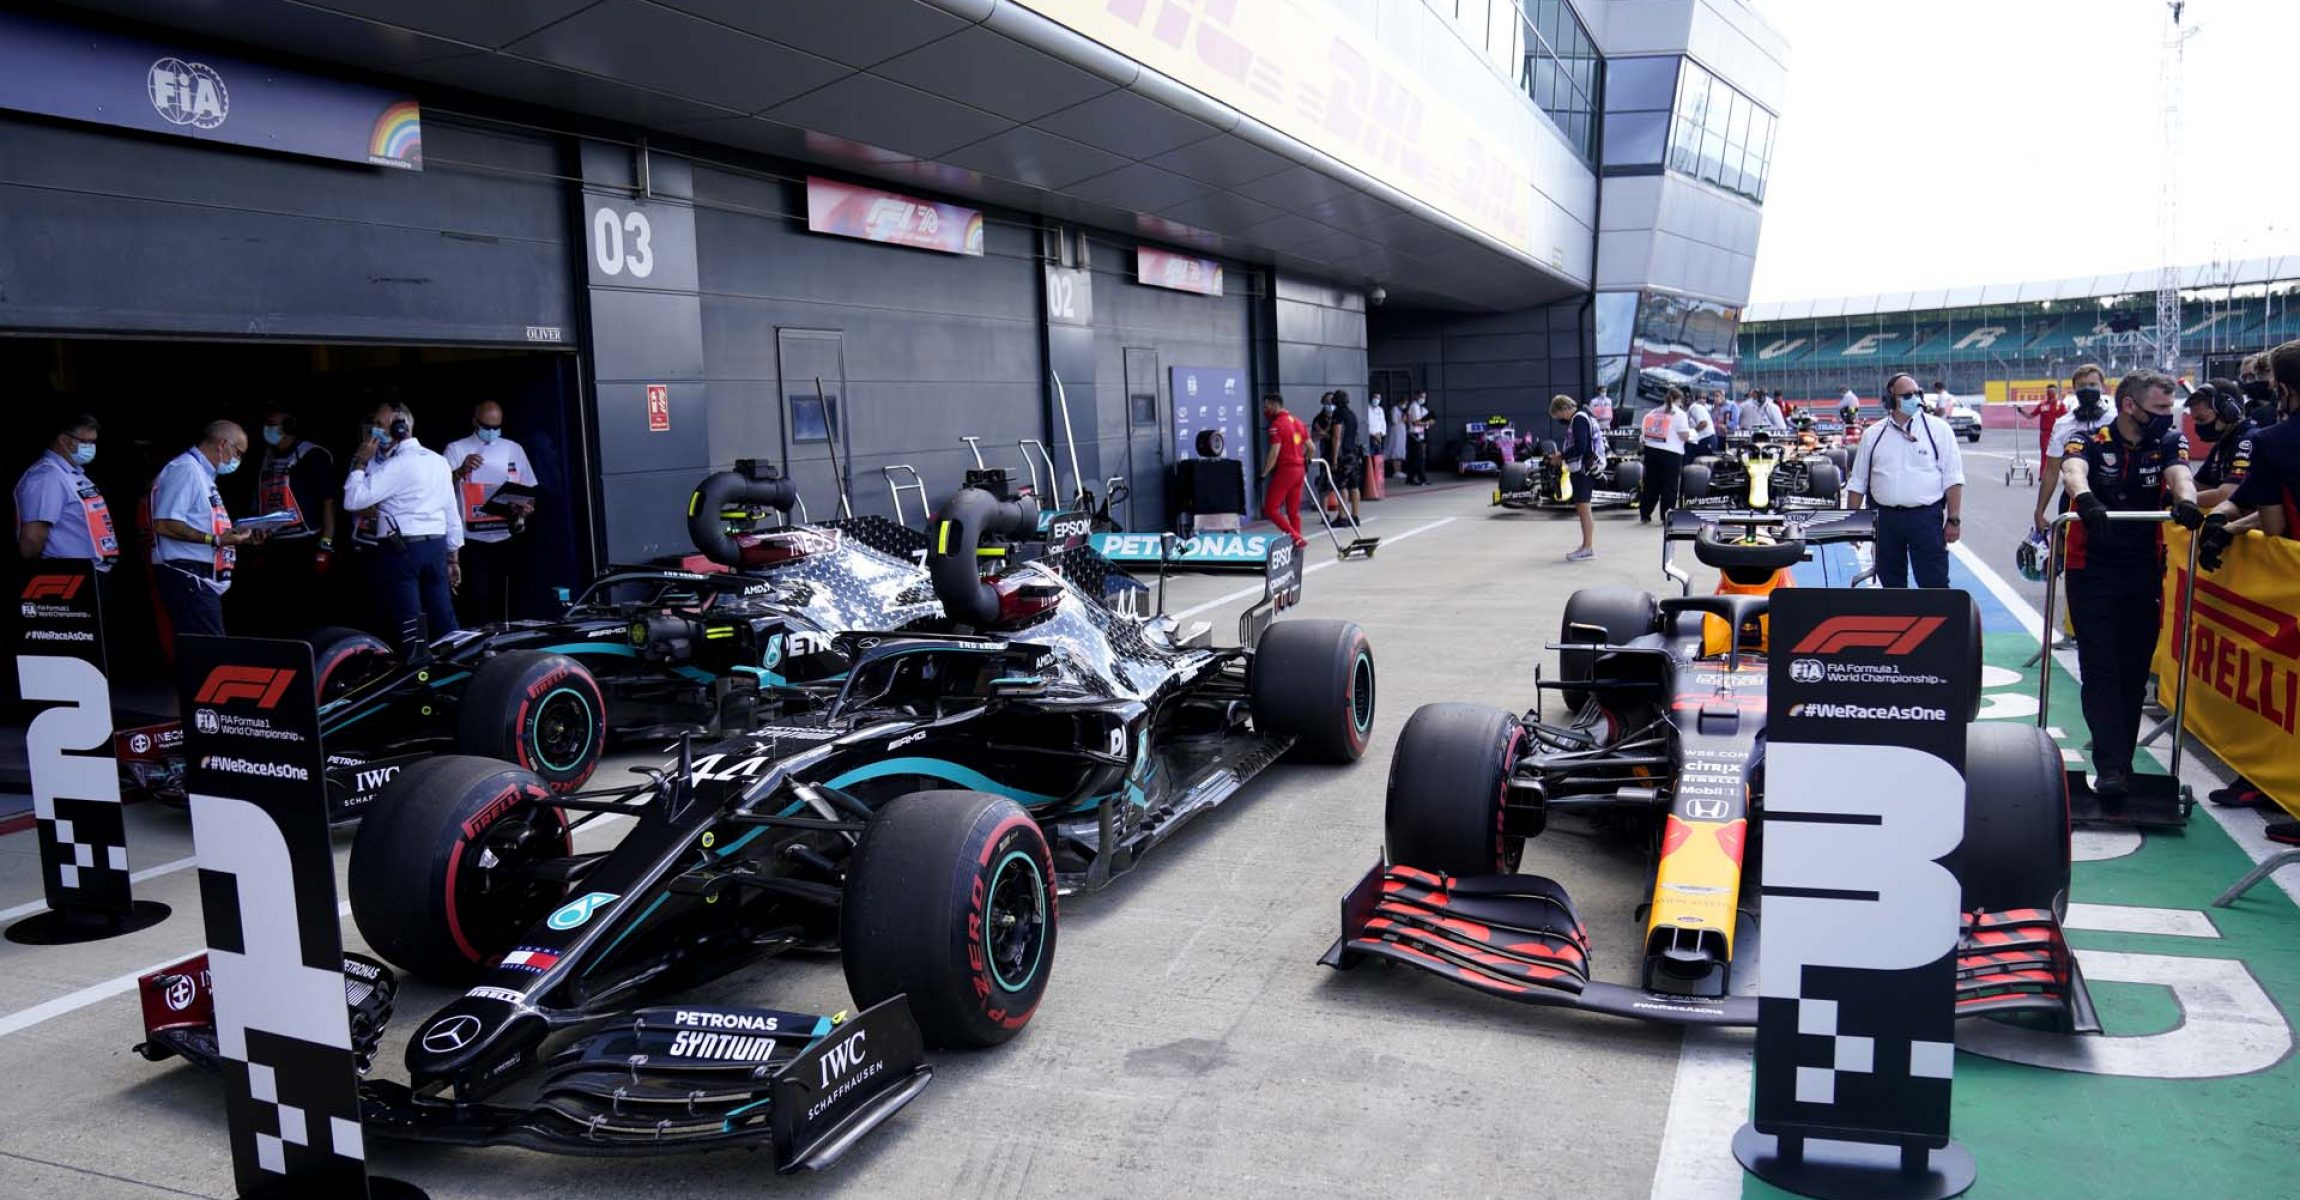 NORTHAMPTON, ENGLAND - AUGUST 01: The cars of Lewis Hamilton of Great Britain and Mercedes GP, Max Verstappen of Netherlands and Red Bull Racing and Valtteri Bottas of Finland and Mercedes GP in parc ferme after qualifying for the F1 Grand Prix of Great Britain at Silverstone on August 01, 2020 in Northampton, England. (Photo by Will Oliver/Pool via Getty Images)